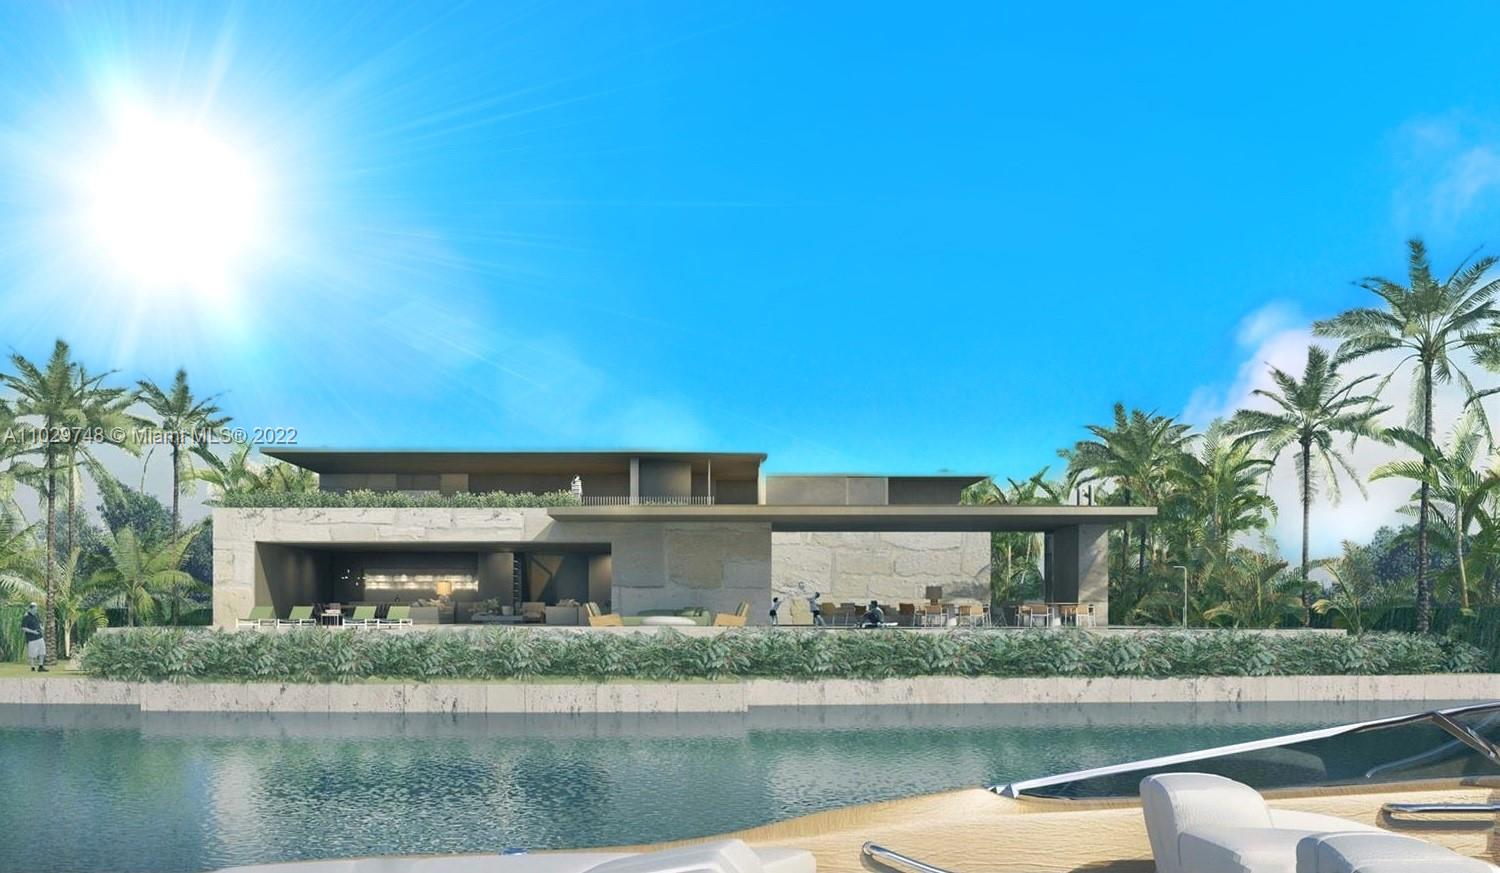 MASTERPIECE BY RENOWNED BRAZILIAN ARCHITECT STUDIO ARTHUR CASAS ON PRIME SOUTHEAST FACING DOUBLE LOT ON SAN MARINO ISLAND! A Rare Find on the Venetian Islands with 22,685 SF Lot Wrapped by 160 FT of waterfrontage. Large enough for this Brand New Horizontal Modern construction in Tasteful Brazilian Beach-Style that is influenced by a spirit both Modernist + Contemporary that is Brazilian but also Cosmopolitan. City of Miami Beach Approved plans include a 6 bedrooms + 7.5 baths Estate Home with staff quarters, media room & gym encompassing 10,500 SF of Interior Living Space. Home's Shell is mid-way completed. This gives you the opportunity to customize your interiors to your Desire. Full set of plans and permits will be delivered with the property. EZ to show!